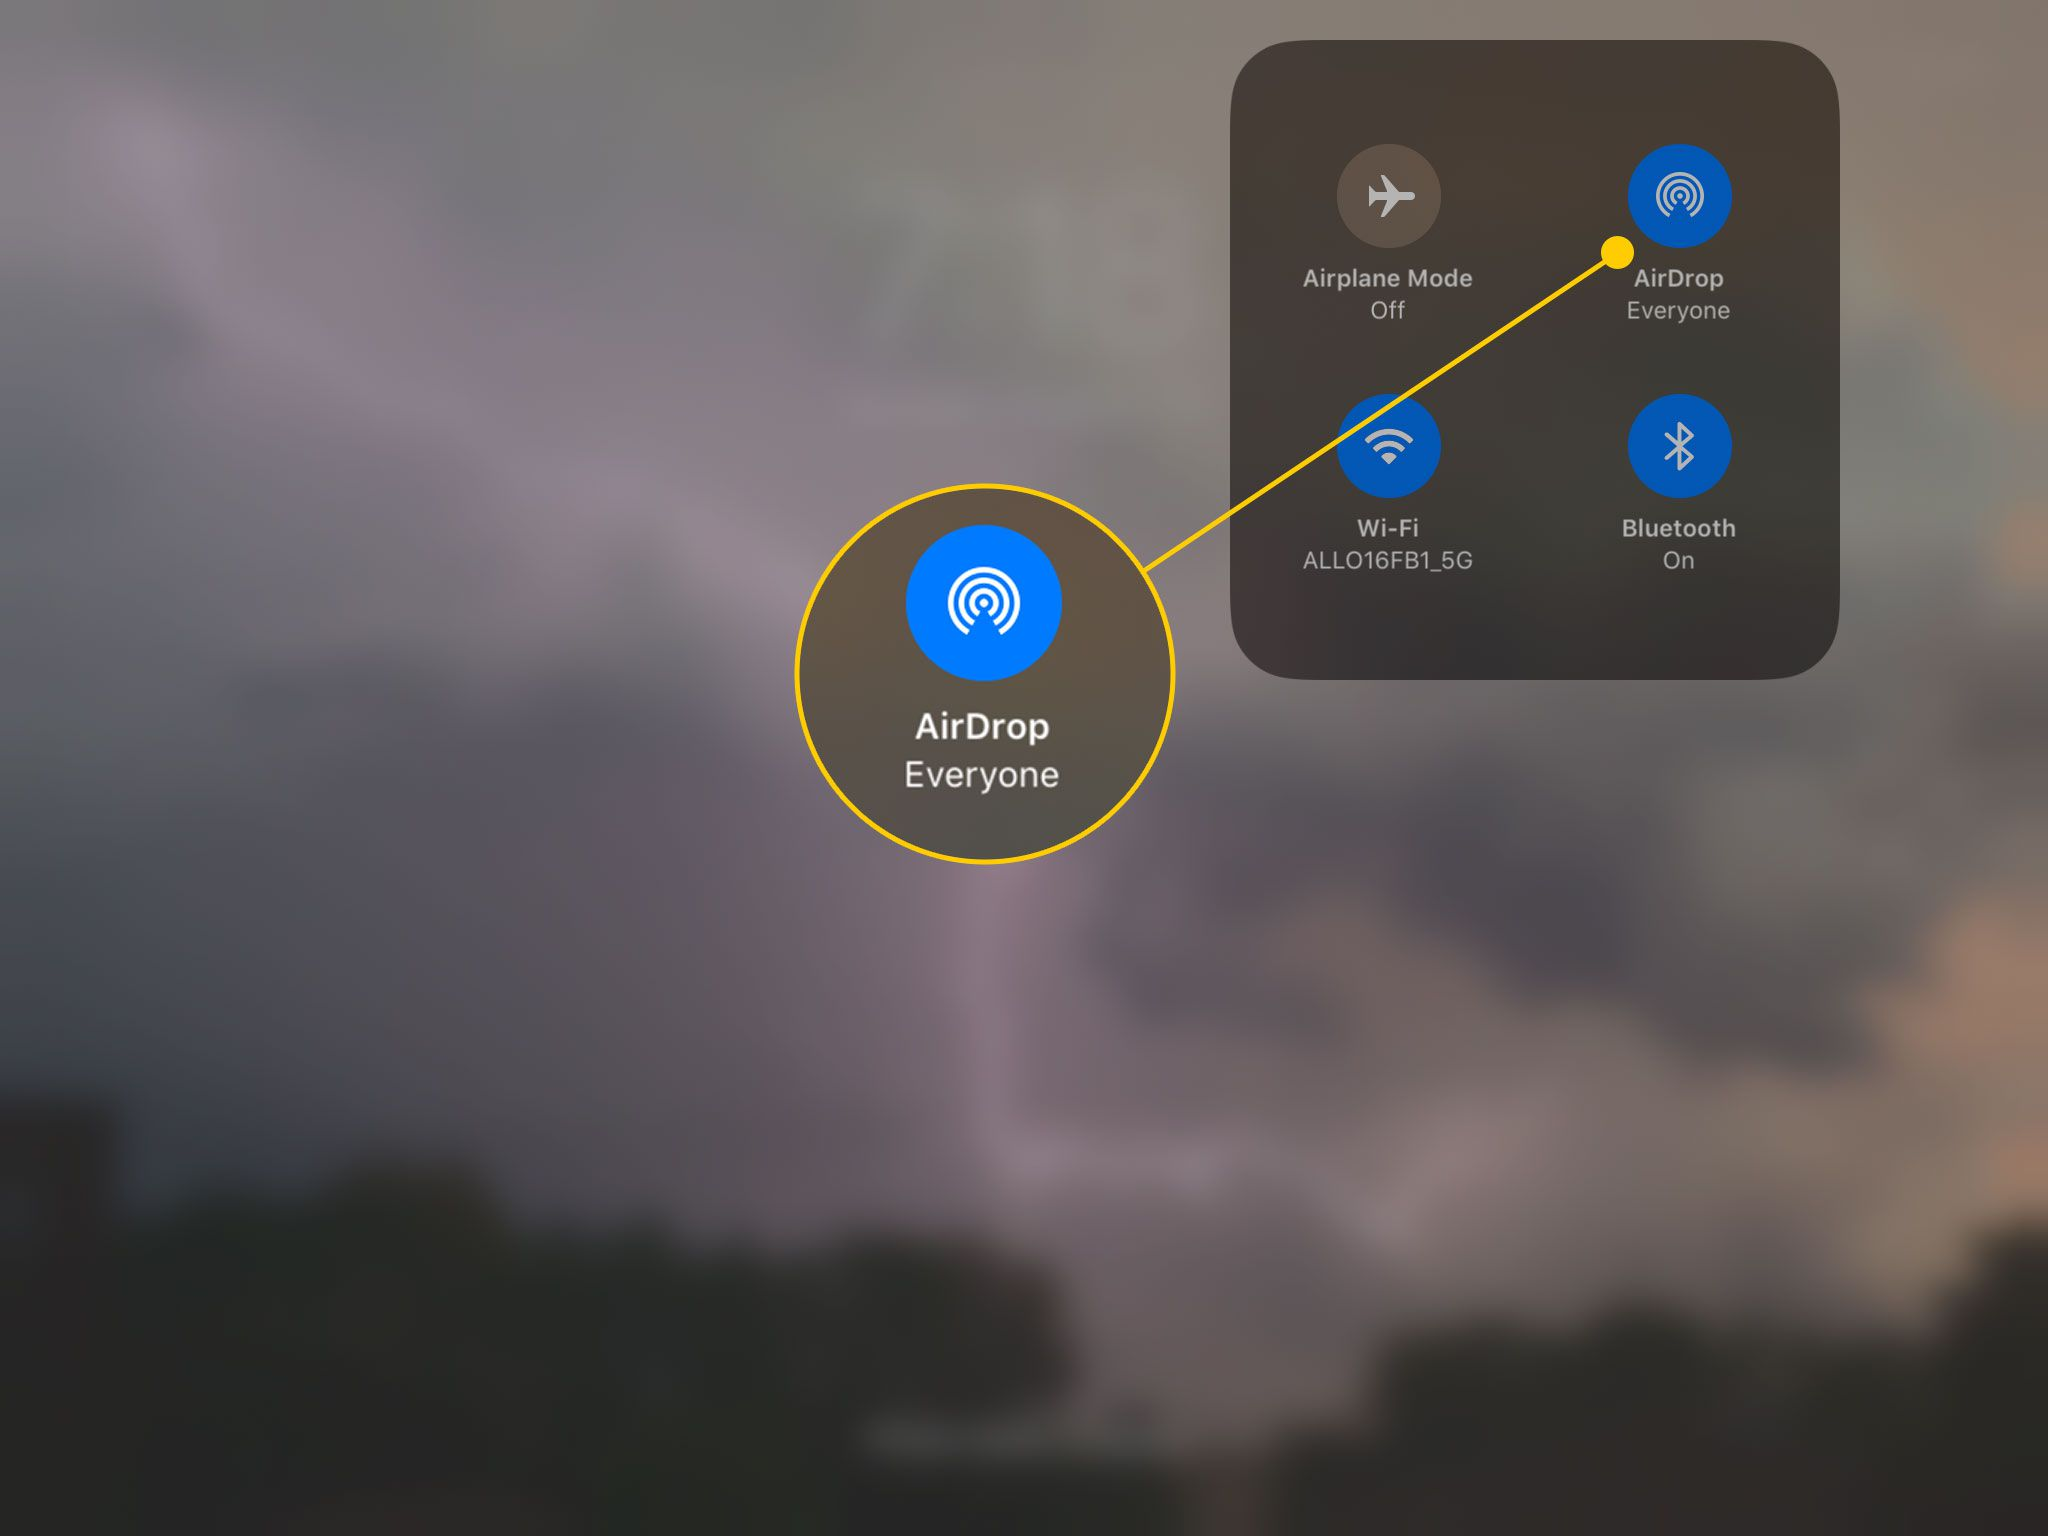 What Is AirDrop? How Does It Work?